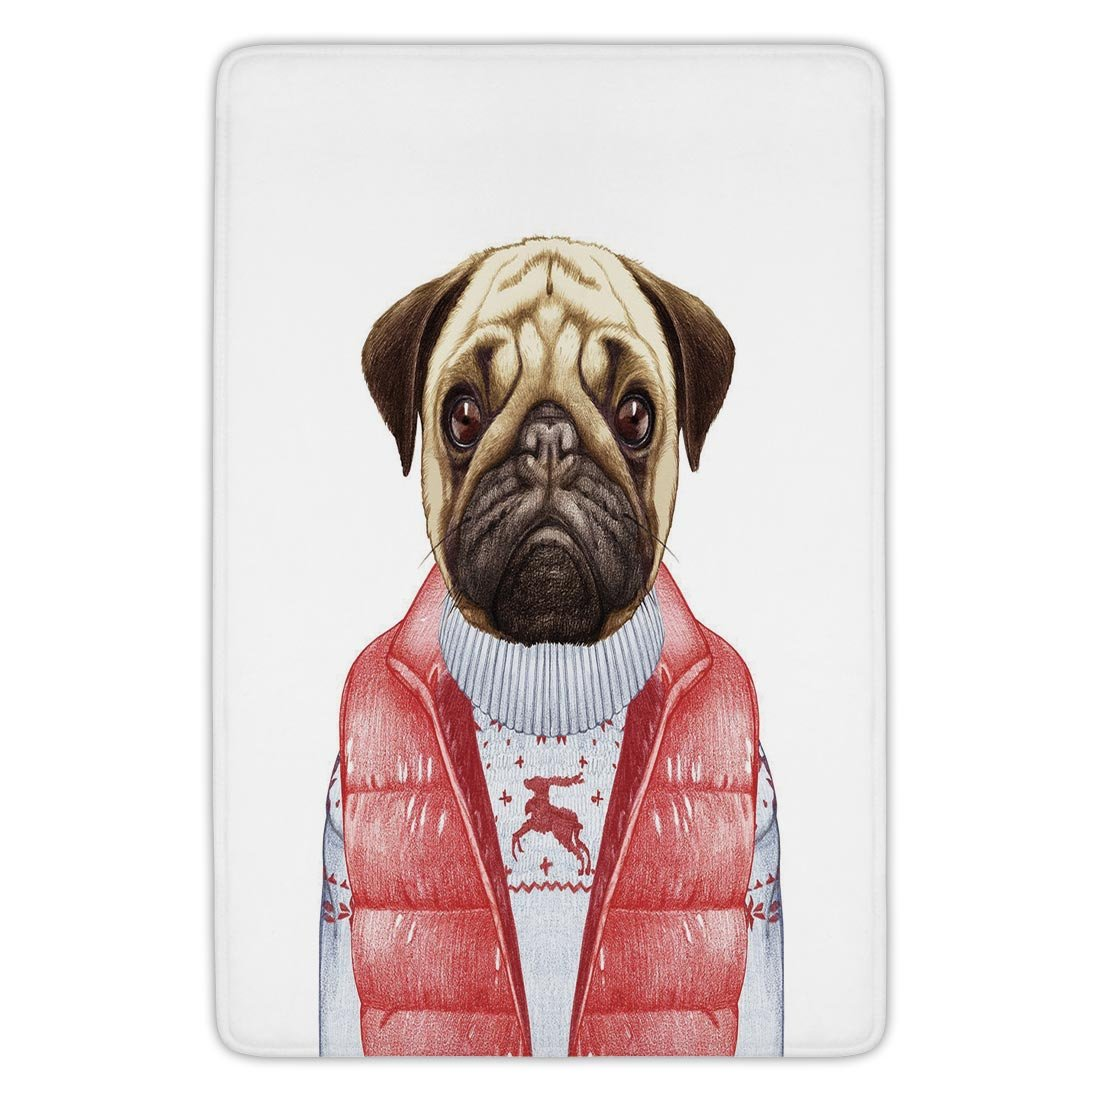 Bathroom Bath Rug Kitchen Floor Mat Carpet,Pug,Red Vest and Christmas Sweater on a Adorable Dog Hand Drawn Animal Fun Image,Pale Brown Red White,Flannel Microfiber Non-slip Soft Absorbent